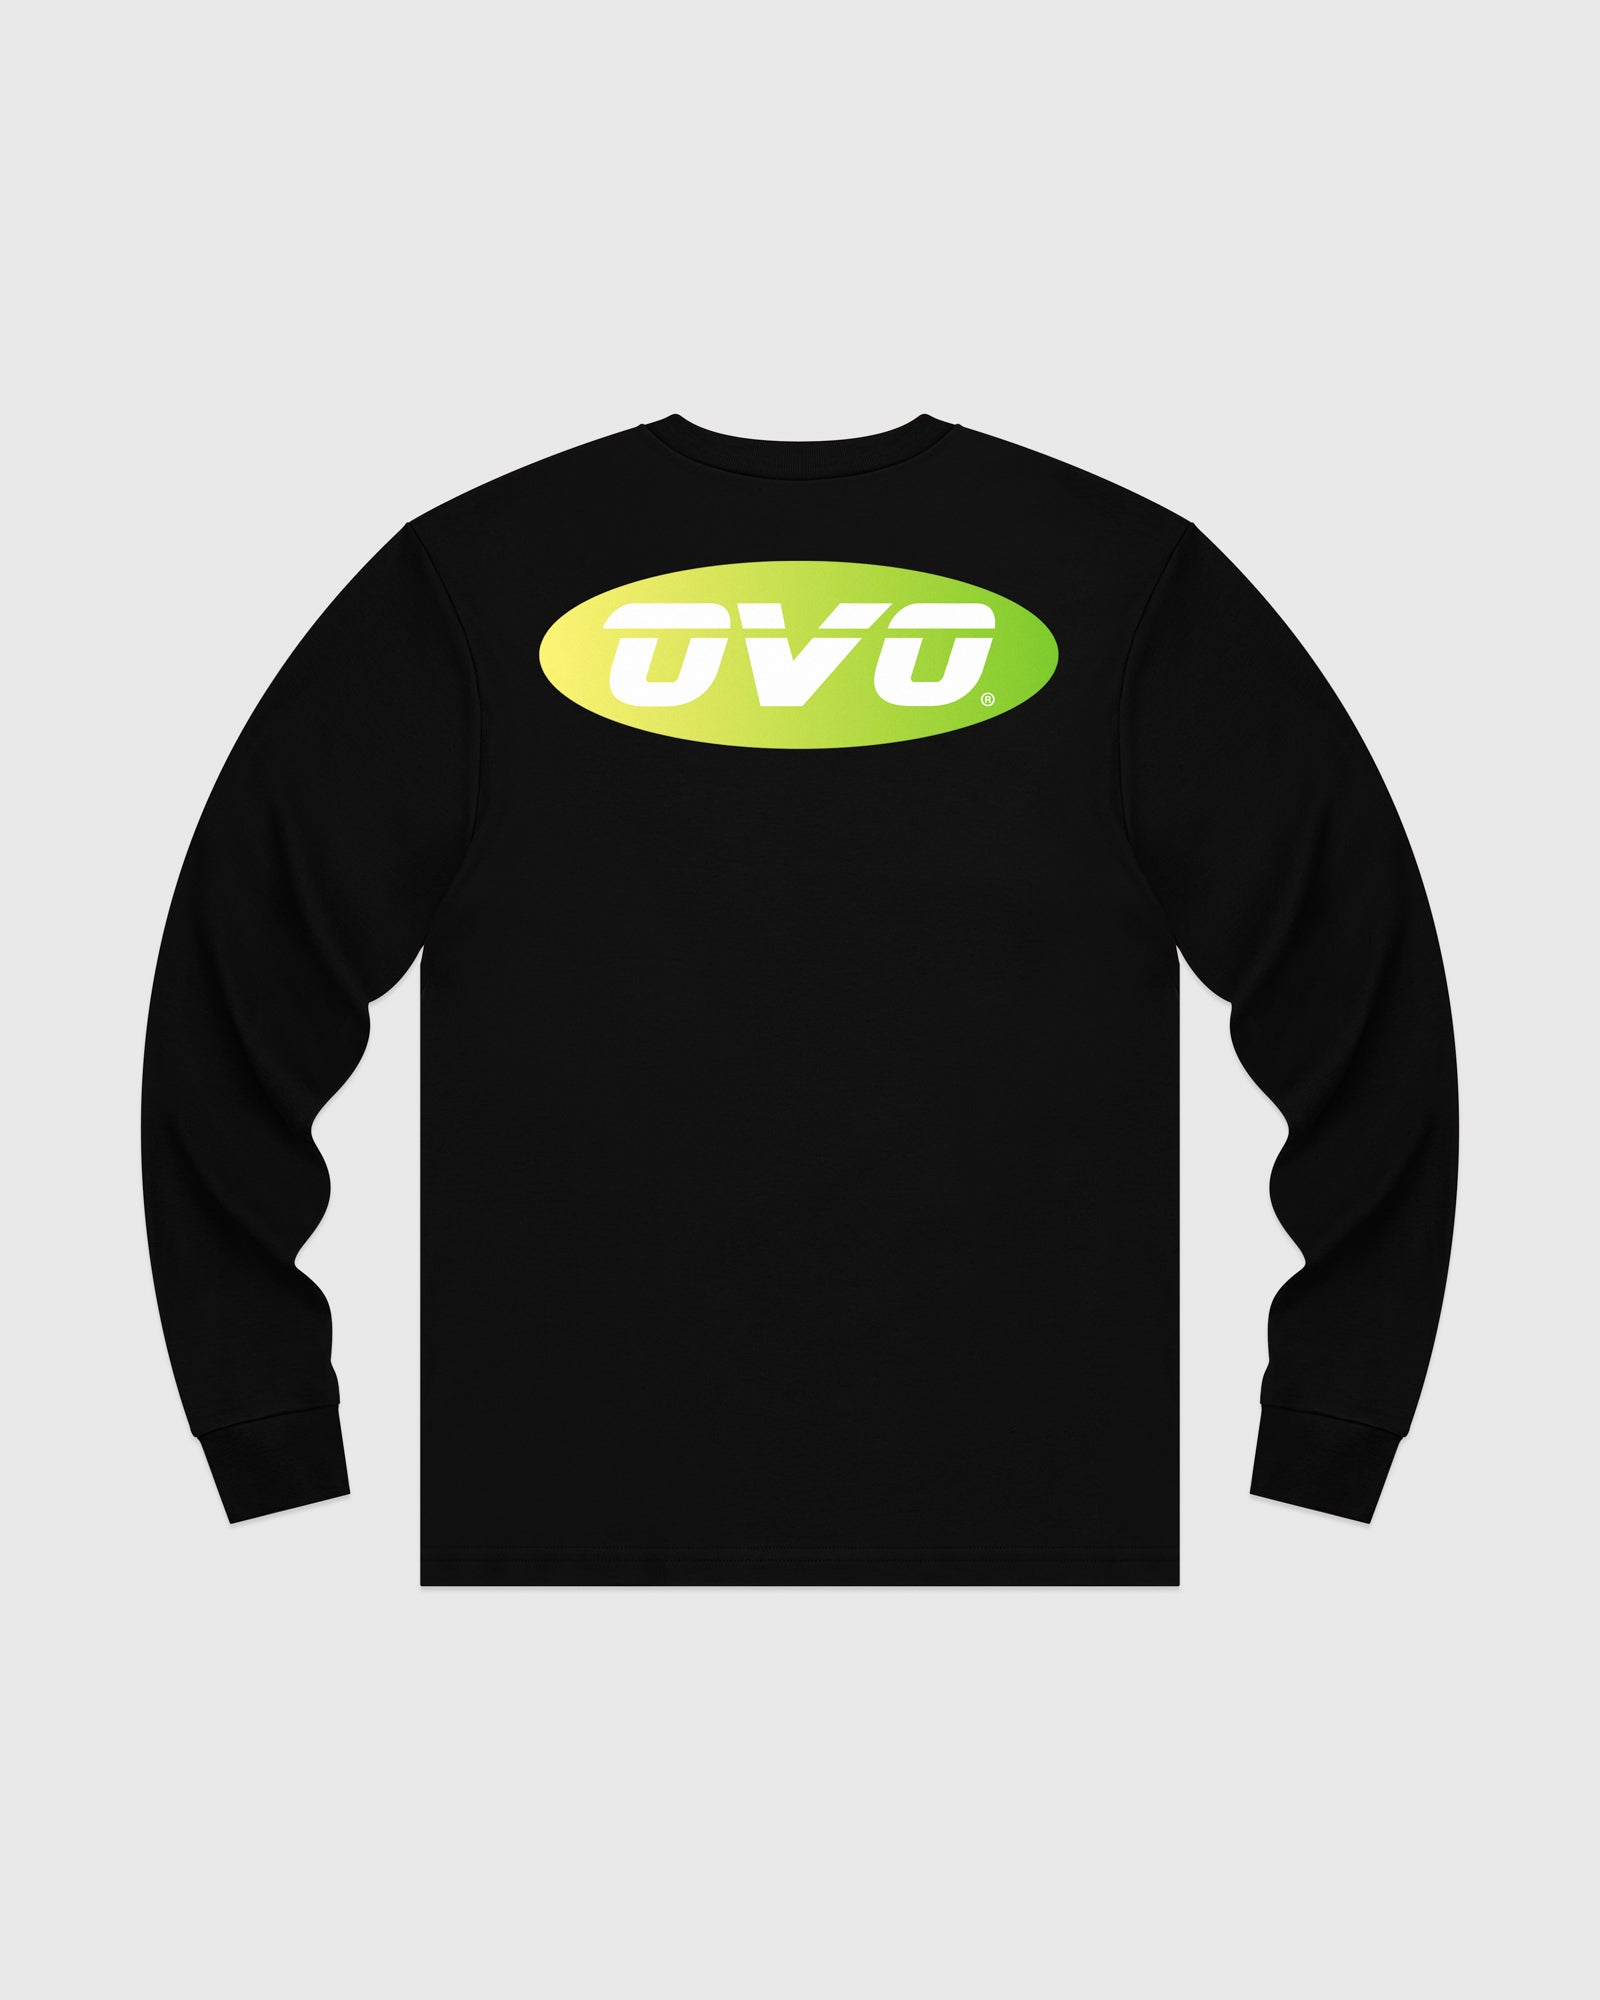 SUNSET RUNNER LONGSLEEVE T-SHIRT - BLACK IMAGE #5